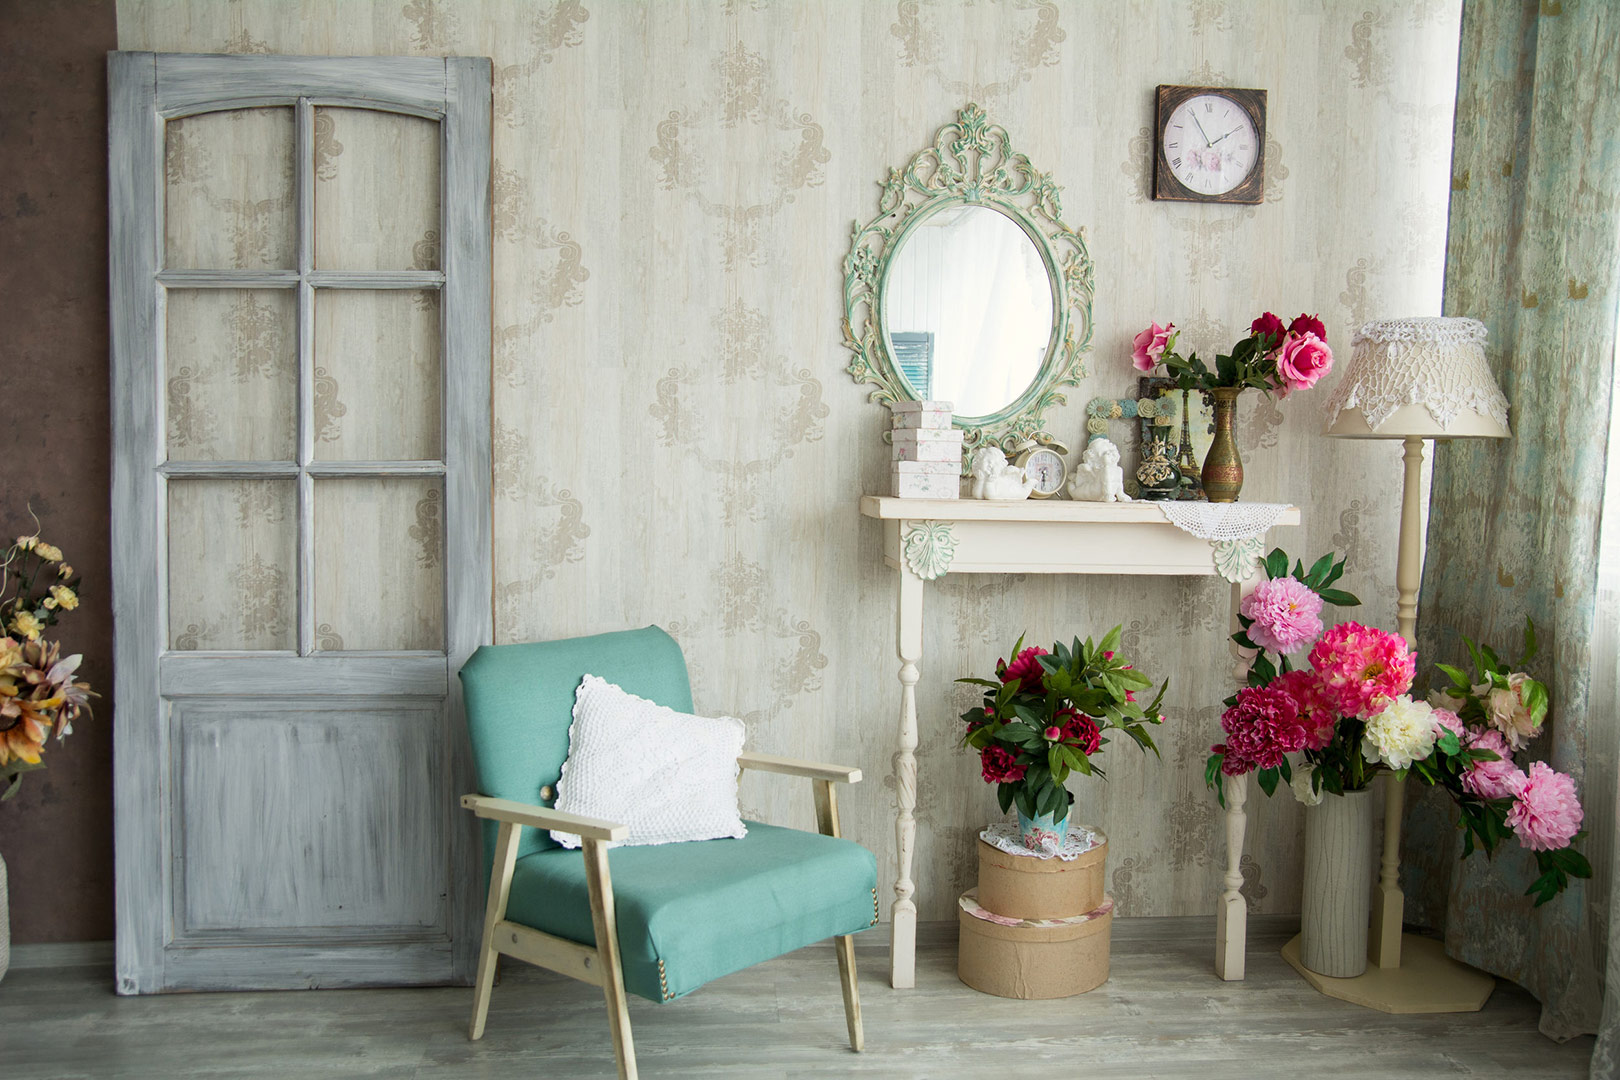 Room accented with colourful flowers